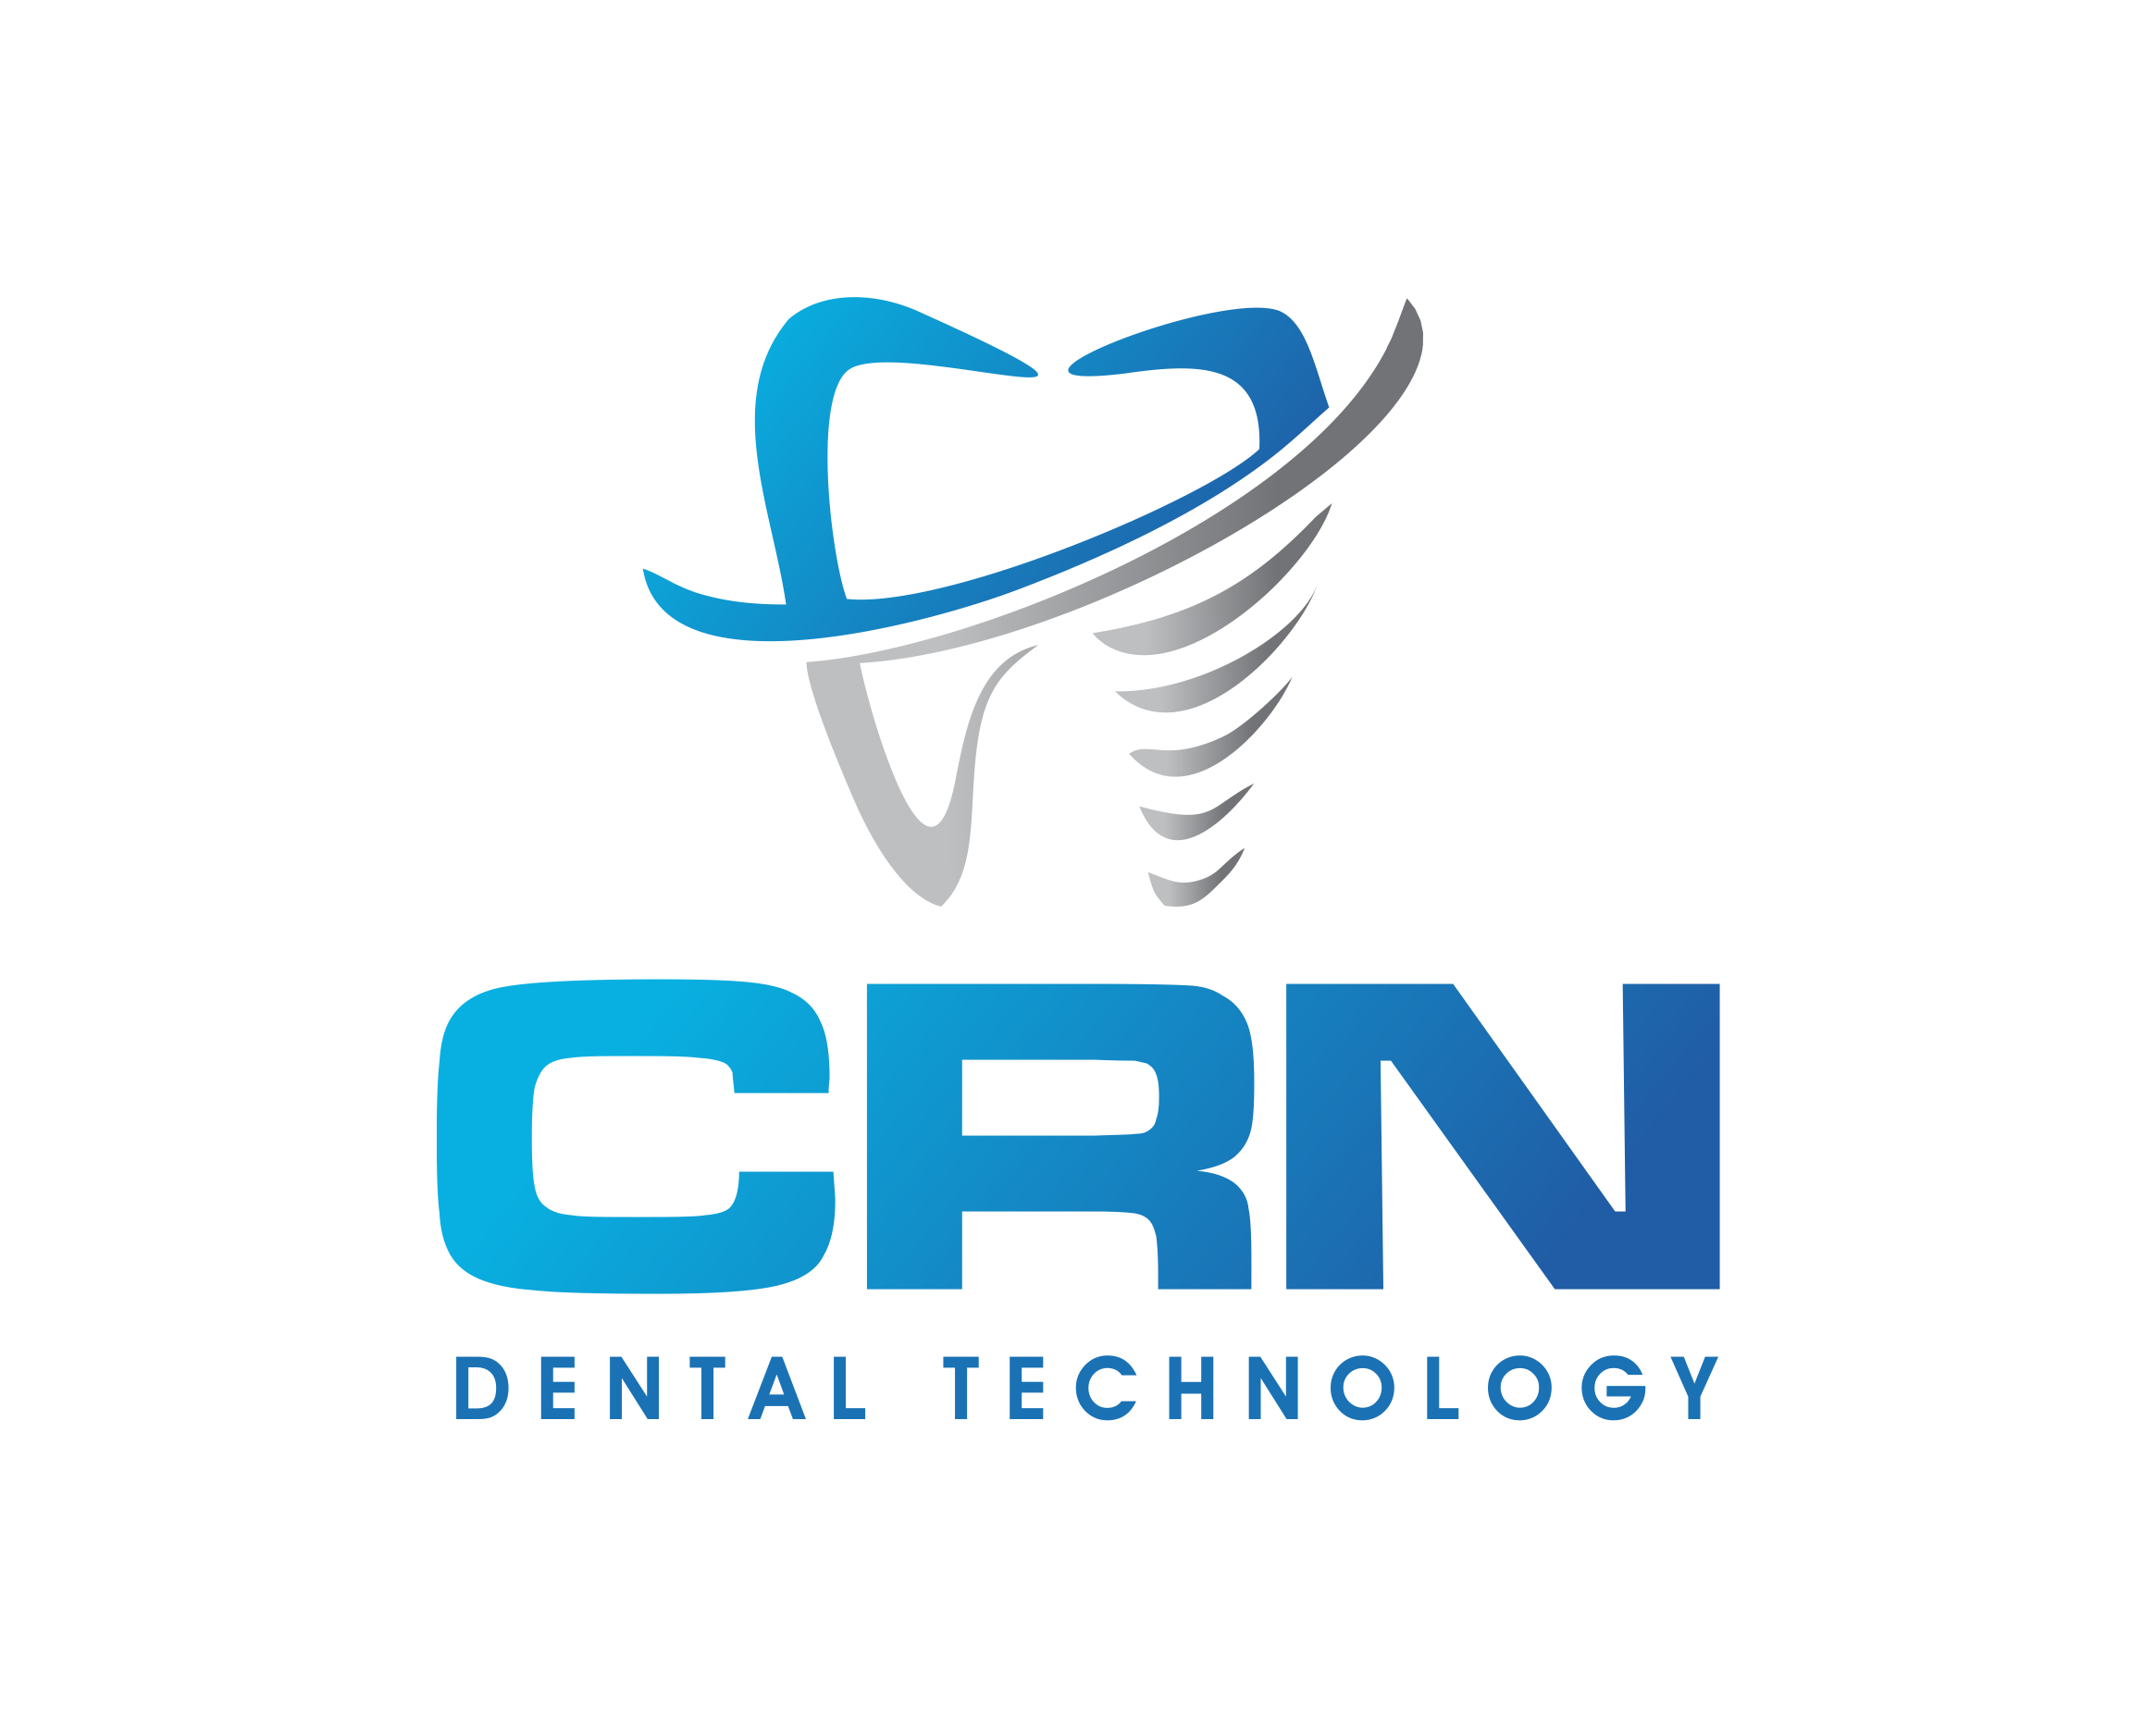 CRN Dental